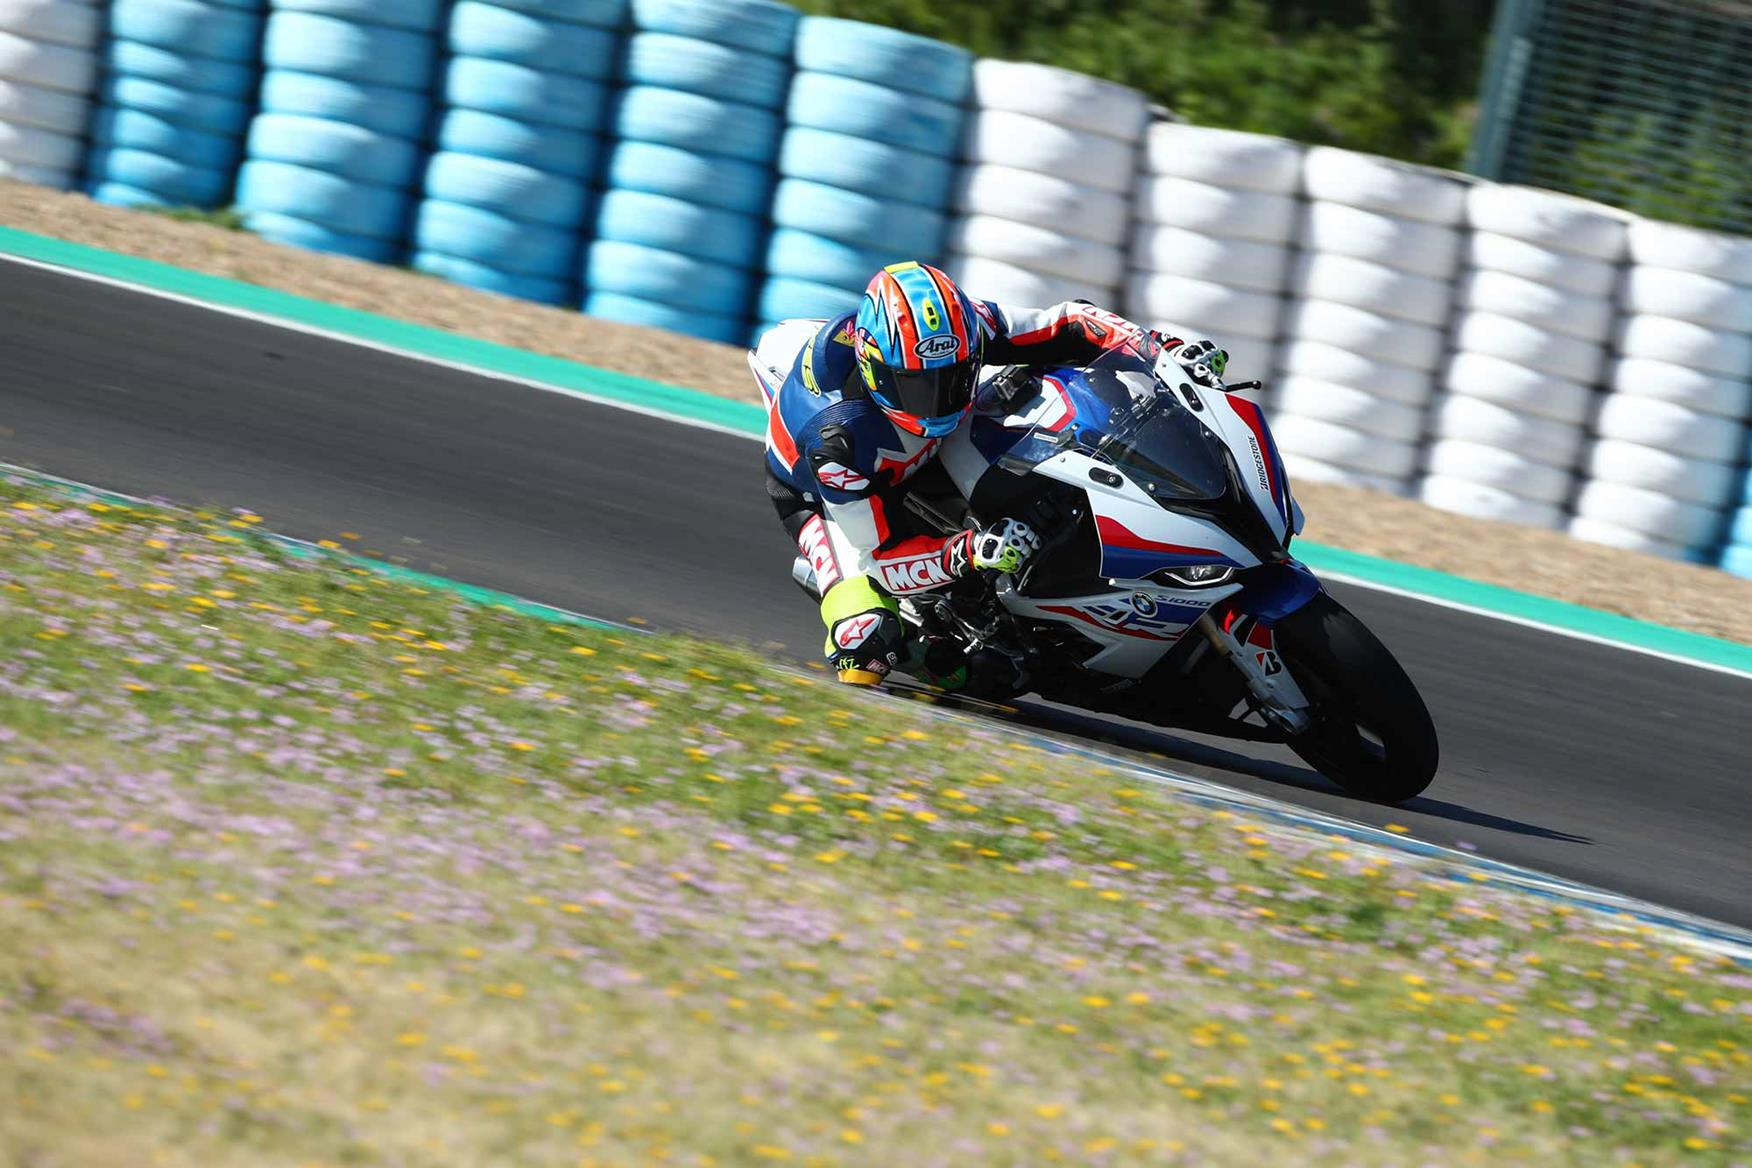 BMW S1000RR in action at Jerez